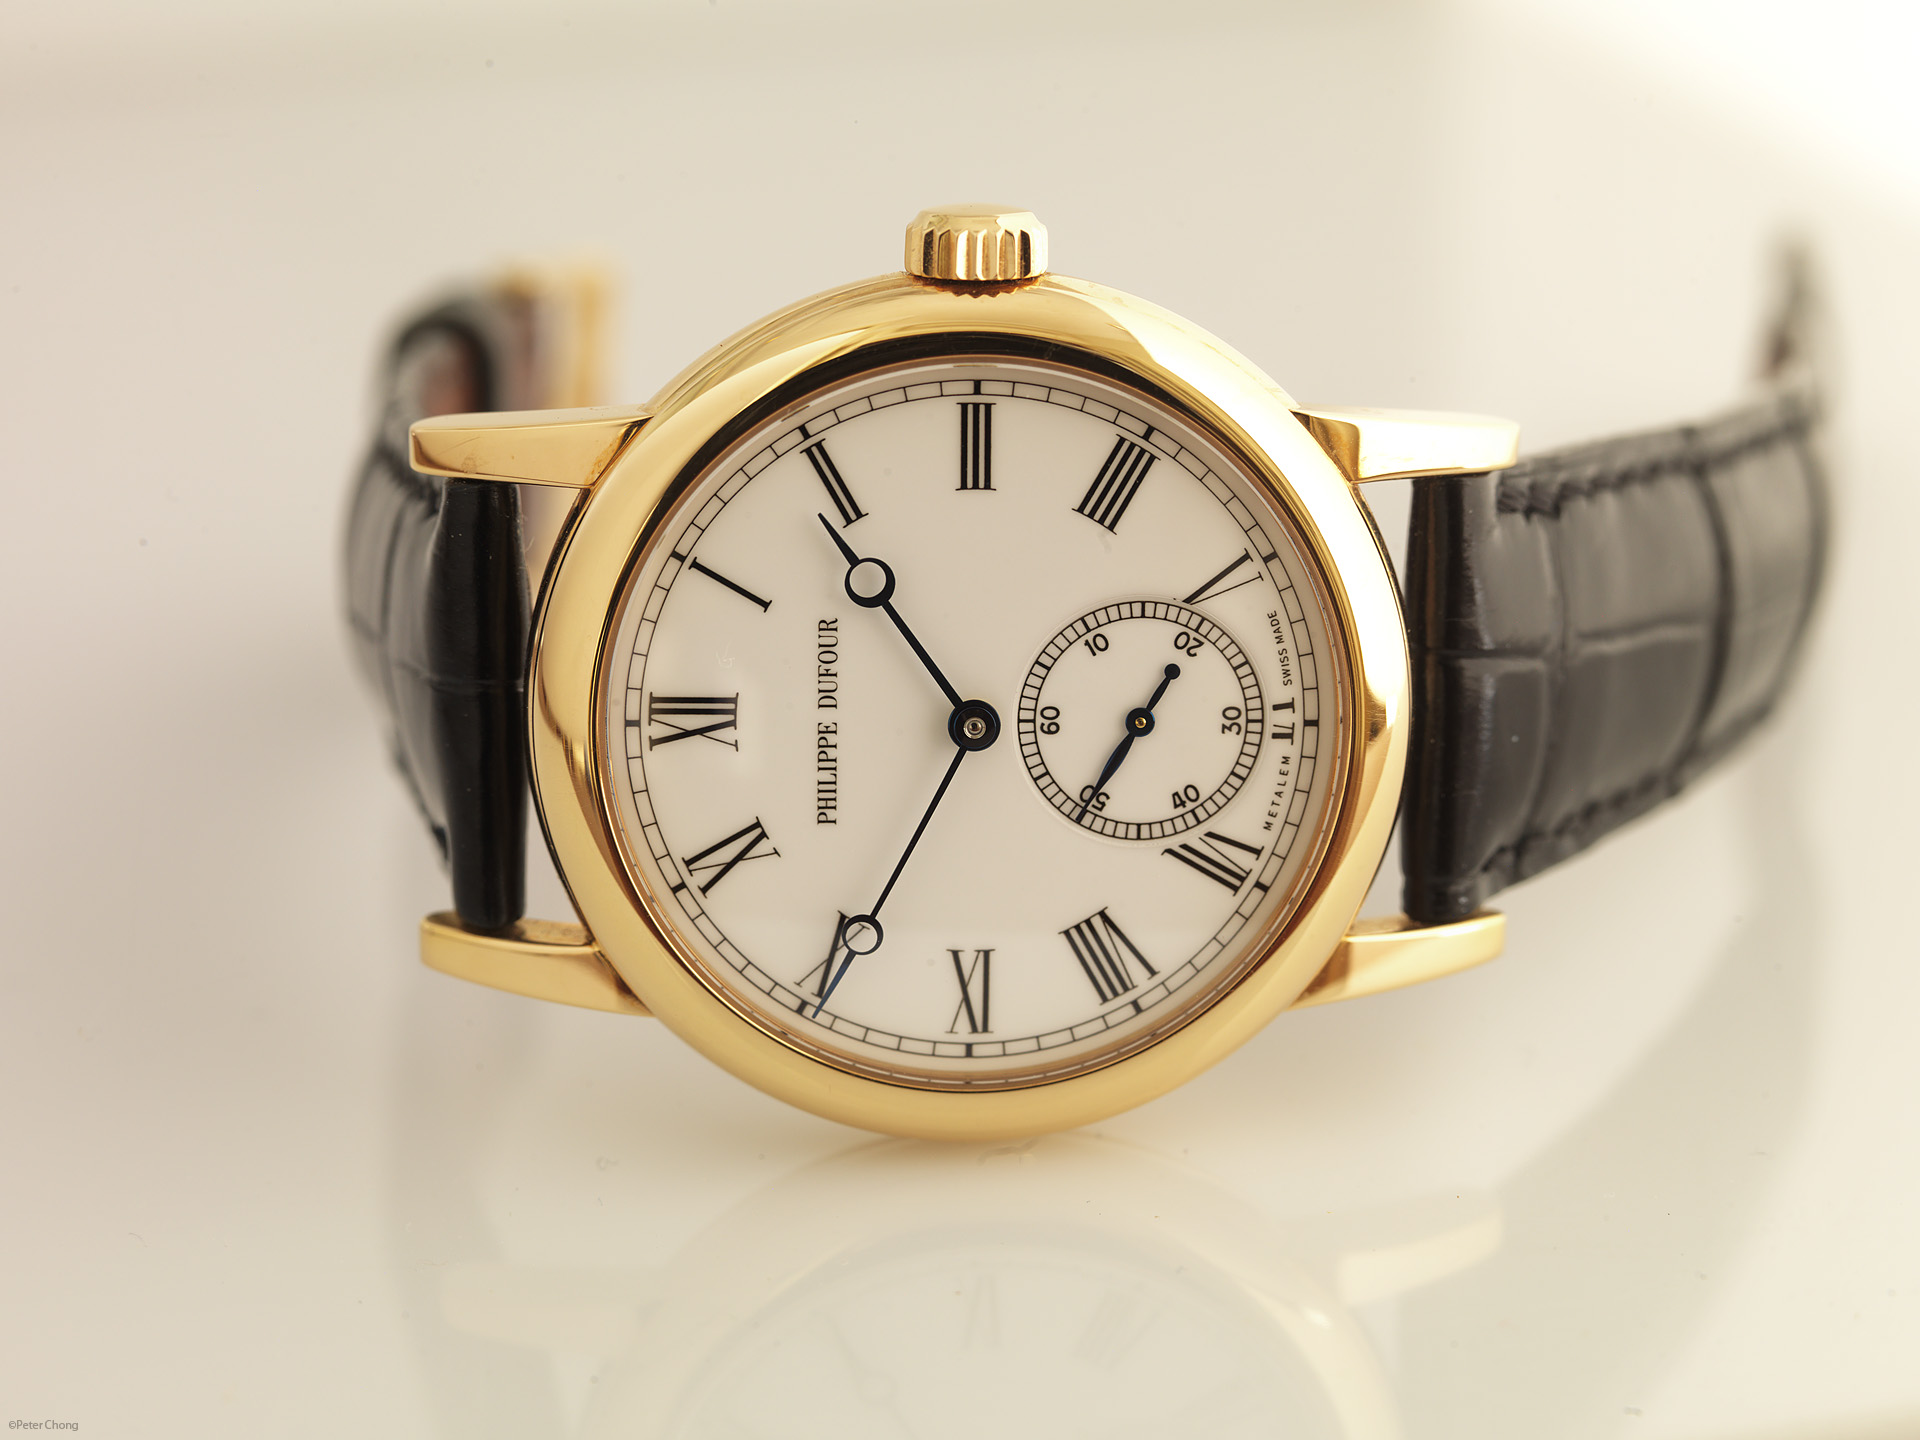 The Philippe Dufour Simplicity. Simply one of the best finished watches in the world of horology.